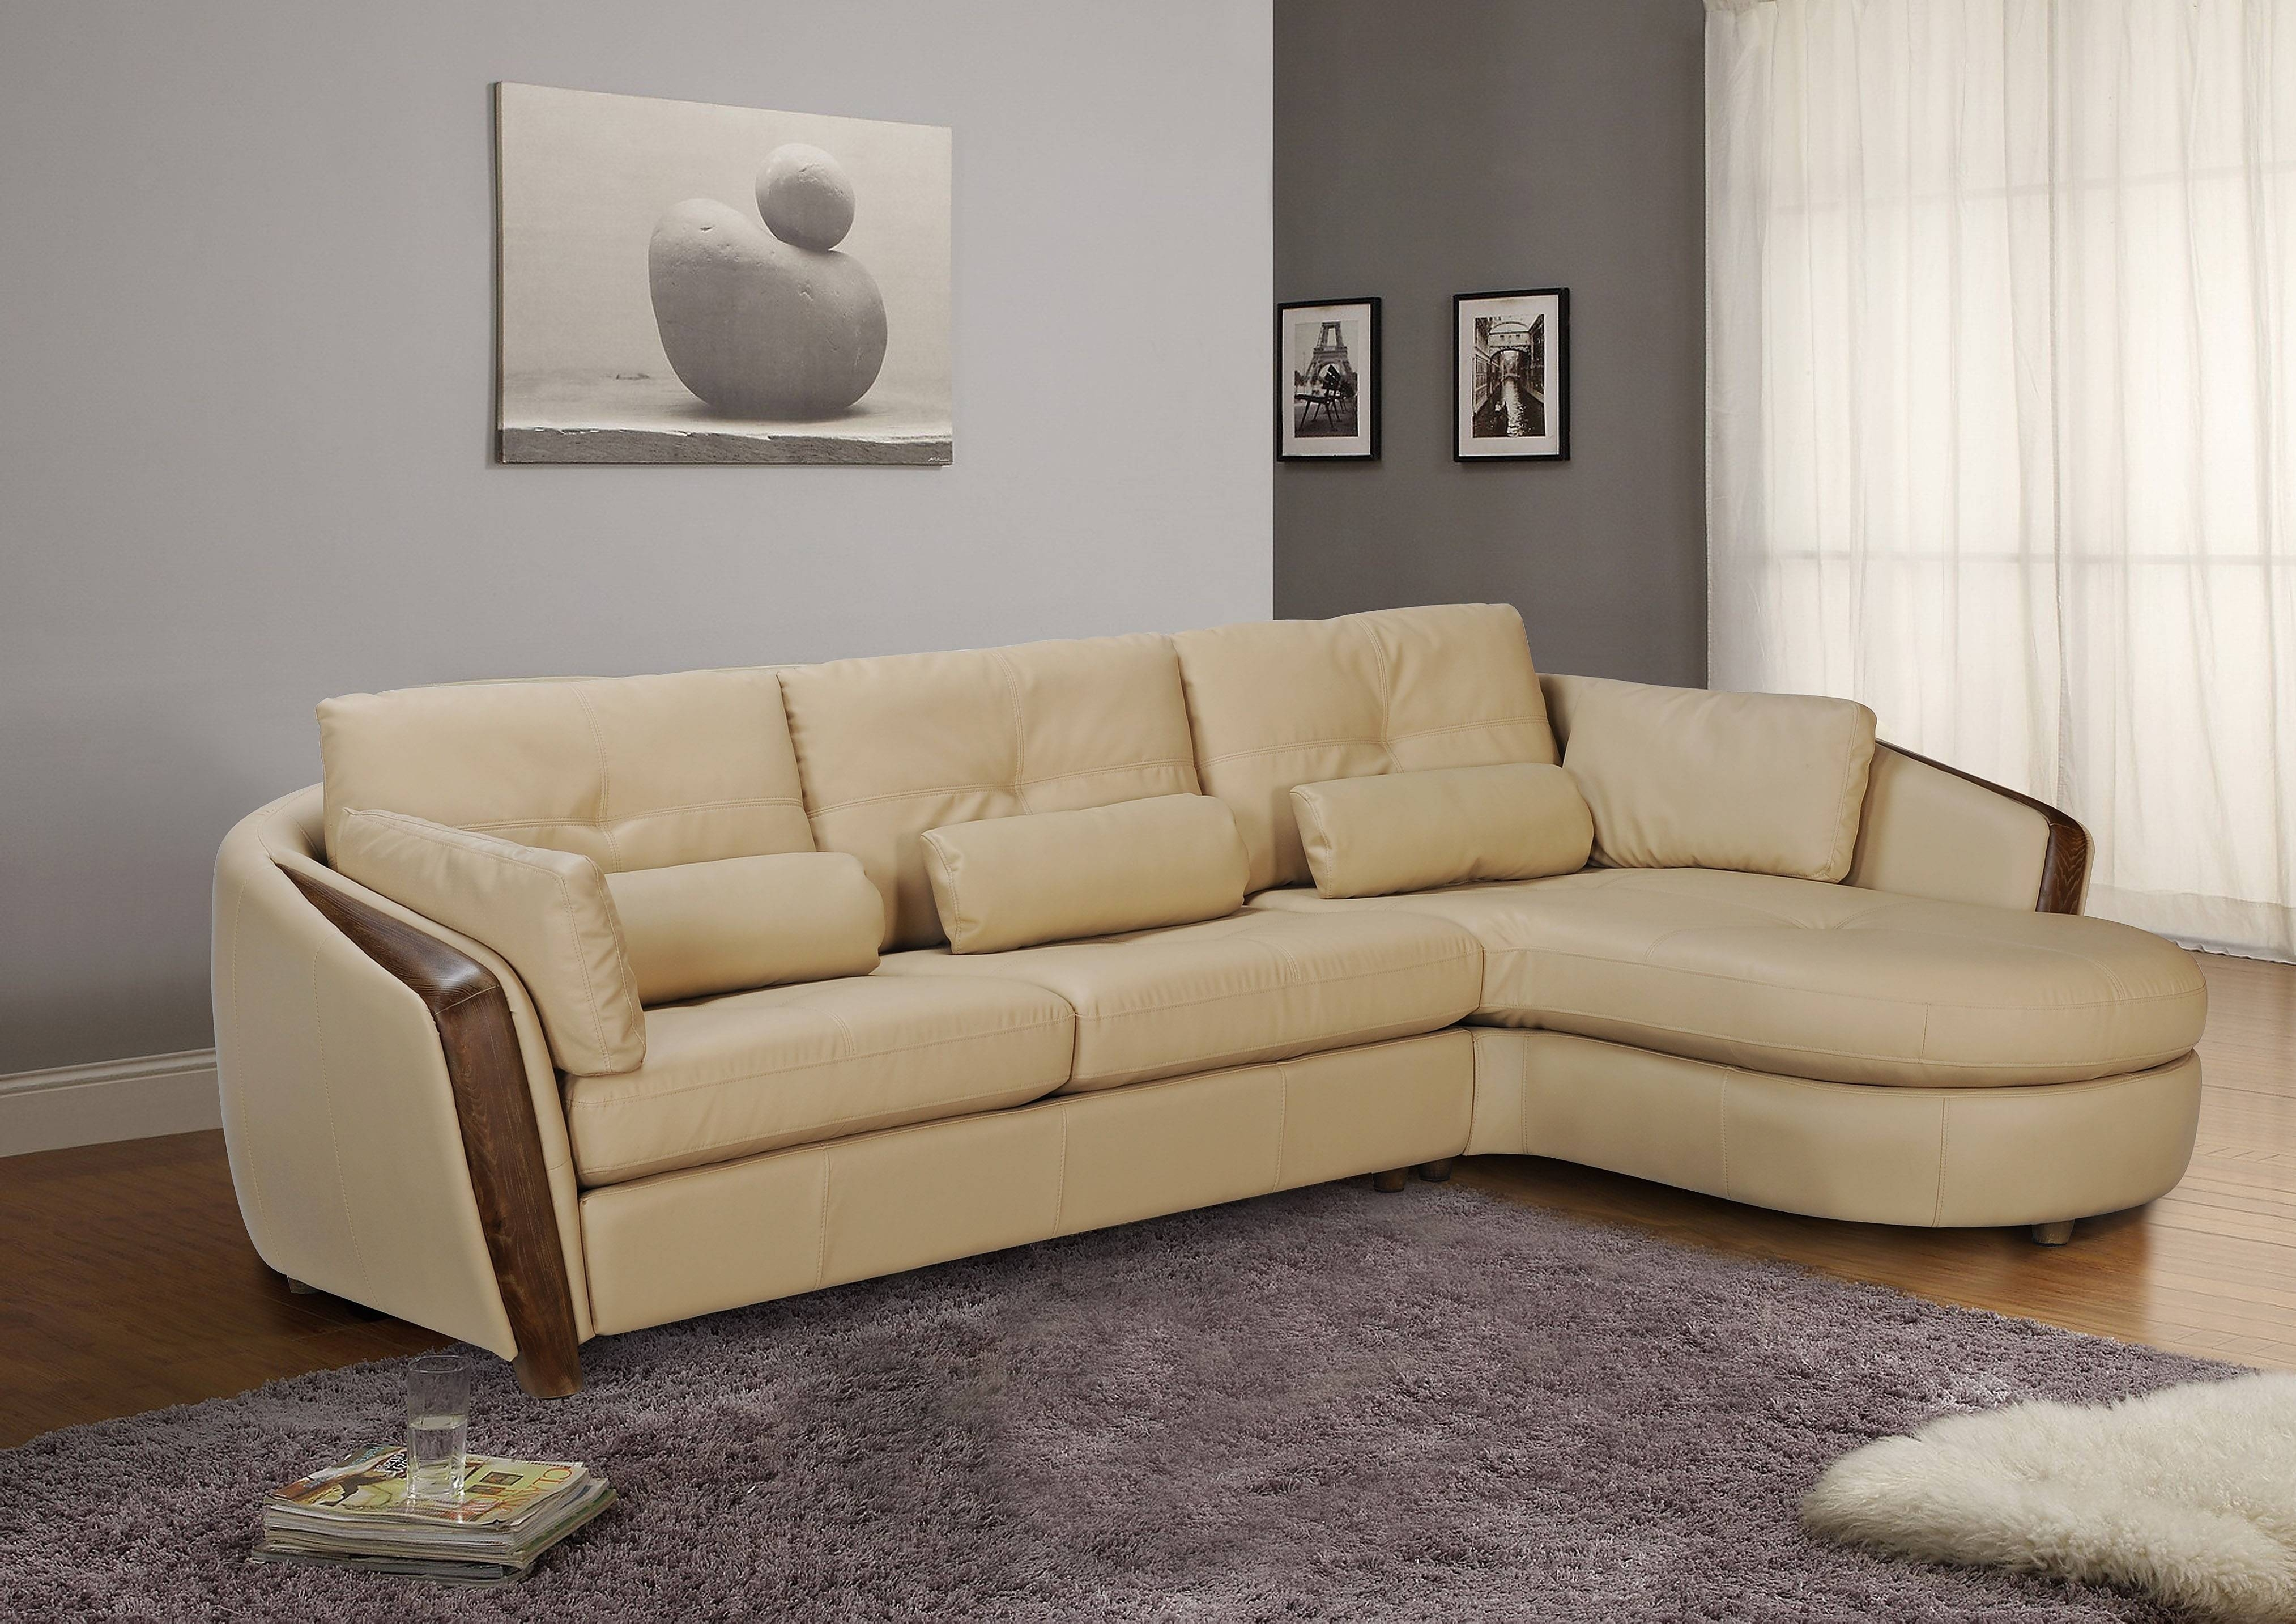 Taupe Bonded Leather Sectional Sofa With Ash Wood Accent Baltimore with regard to Ontario Sectional Sofas (Image 10 of 10)